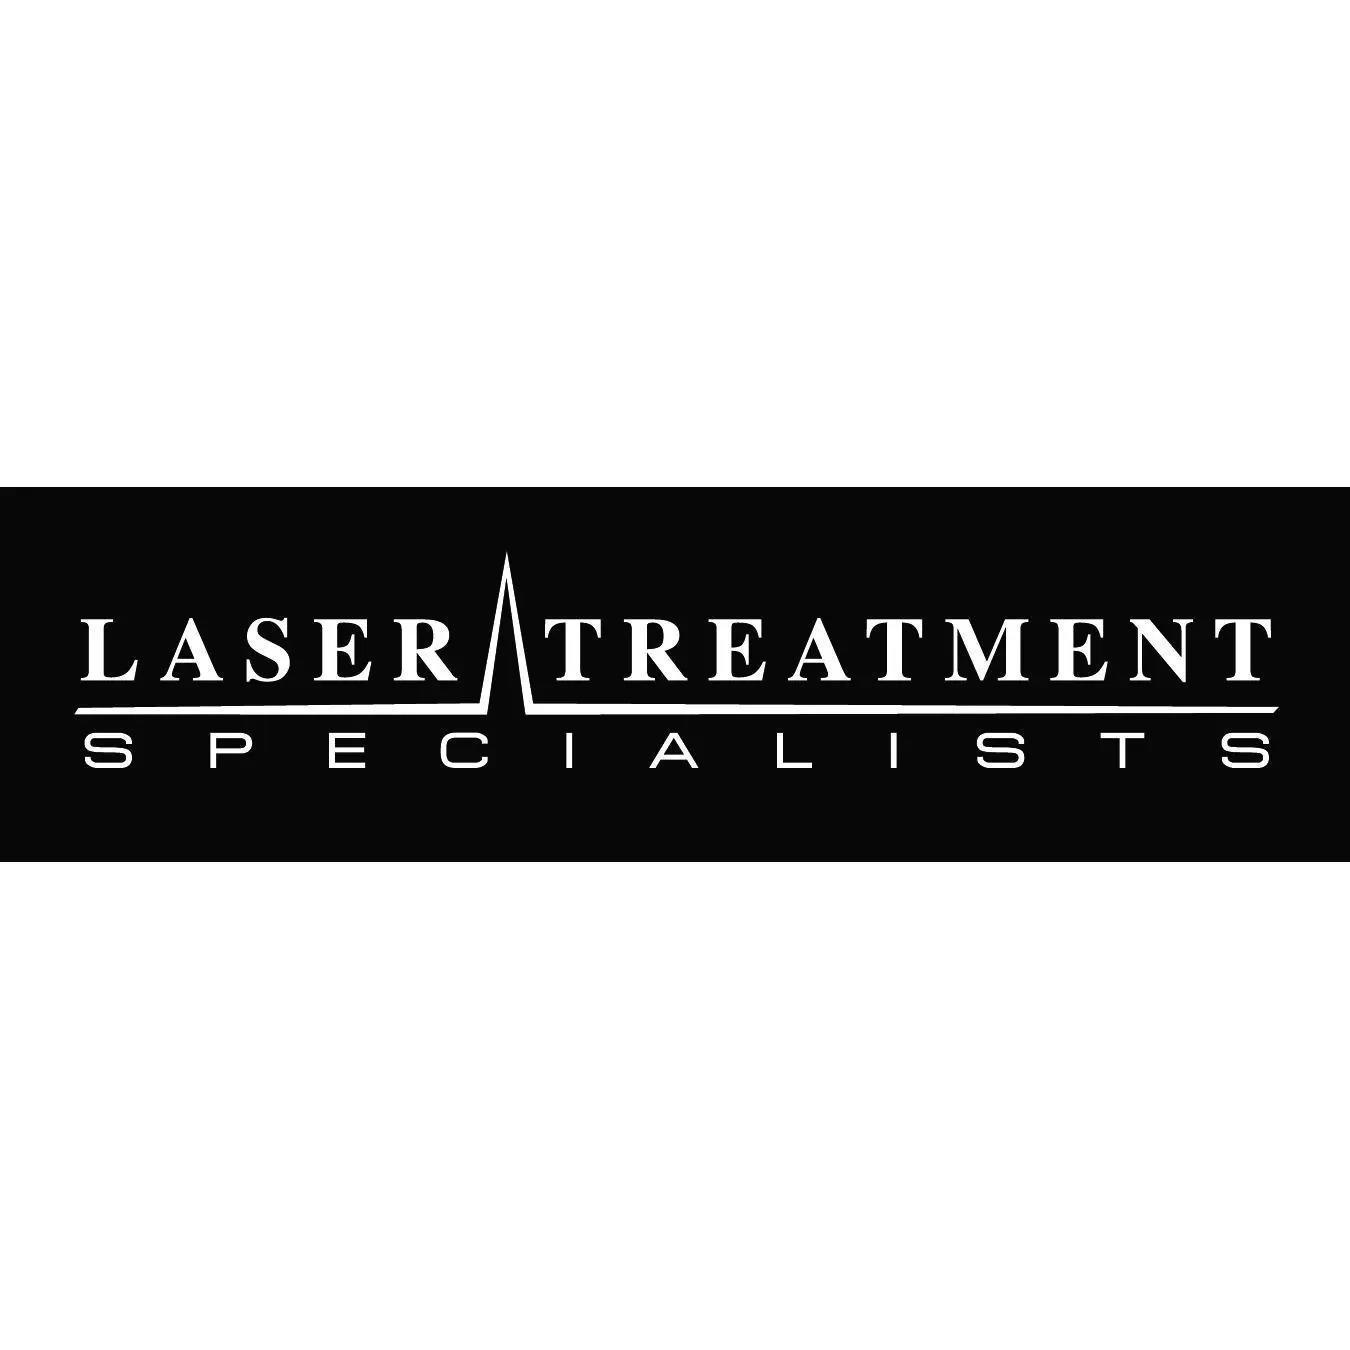 Laser Treatment Specialists - Centennial, CO - Spas